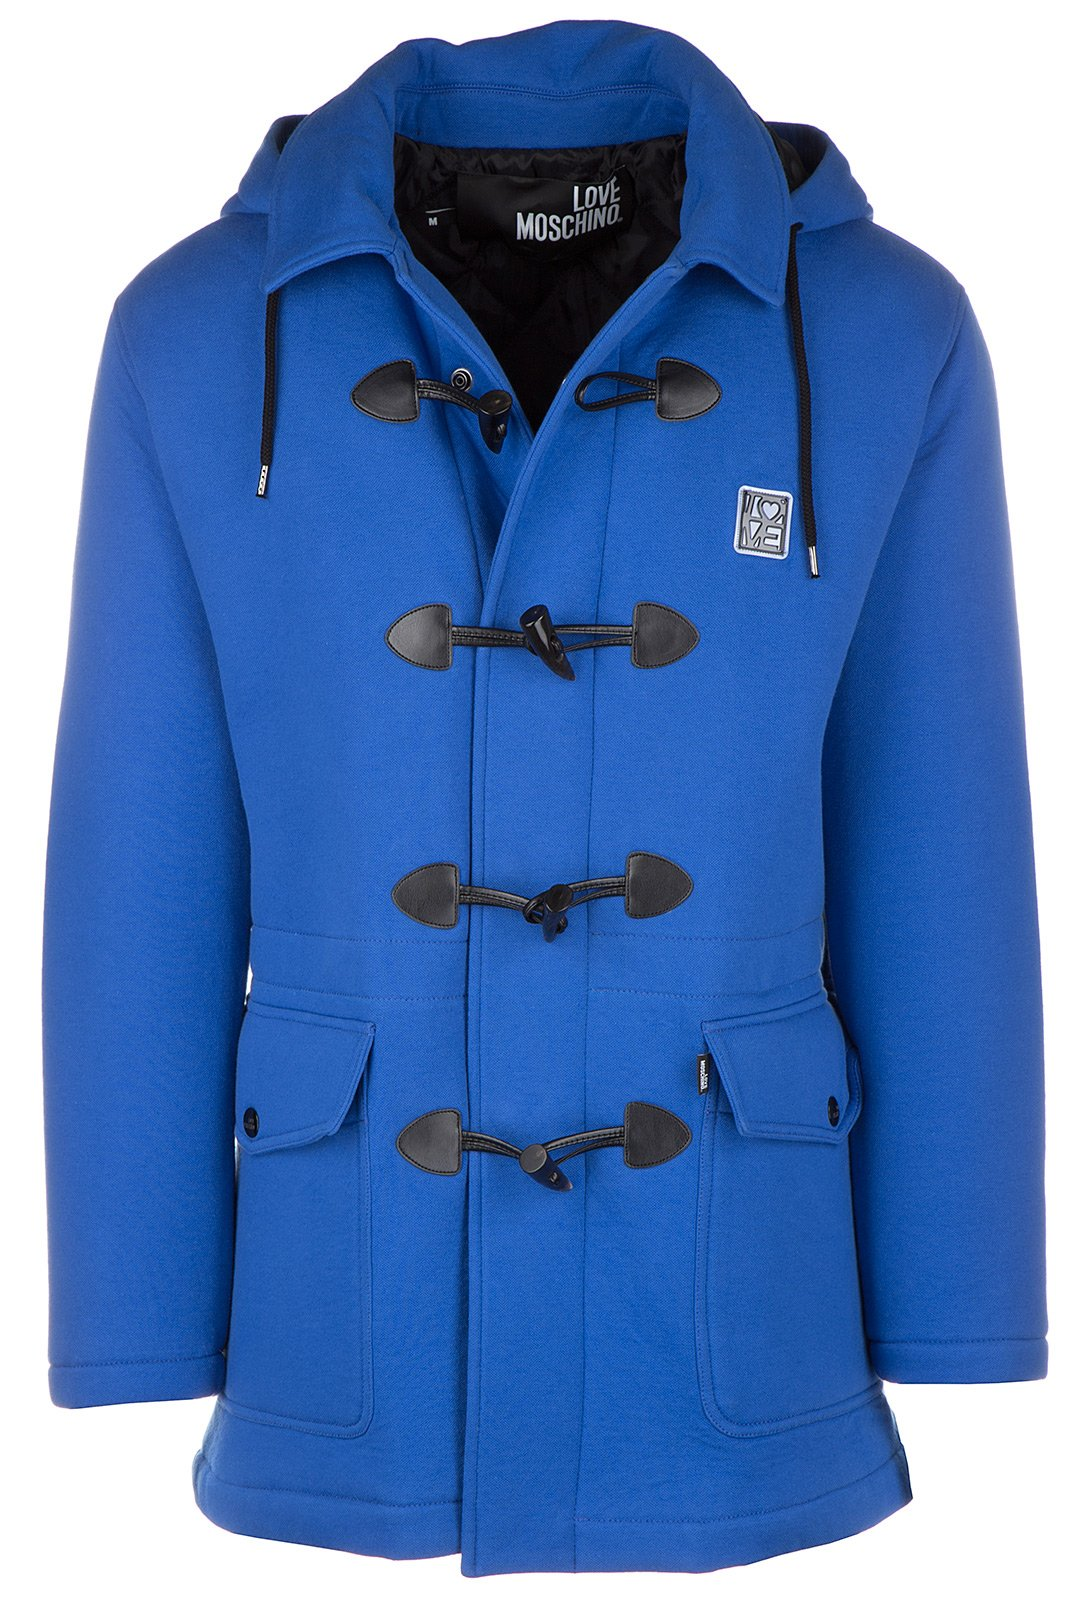 Love Moschino montgomery duffle coat outwear men original blu US size M (US 8) M 3 114 00 M 3677 Y1